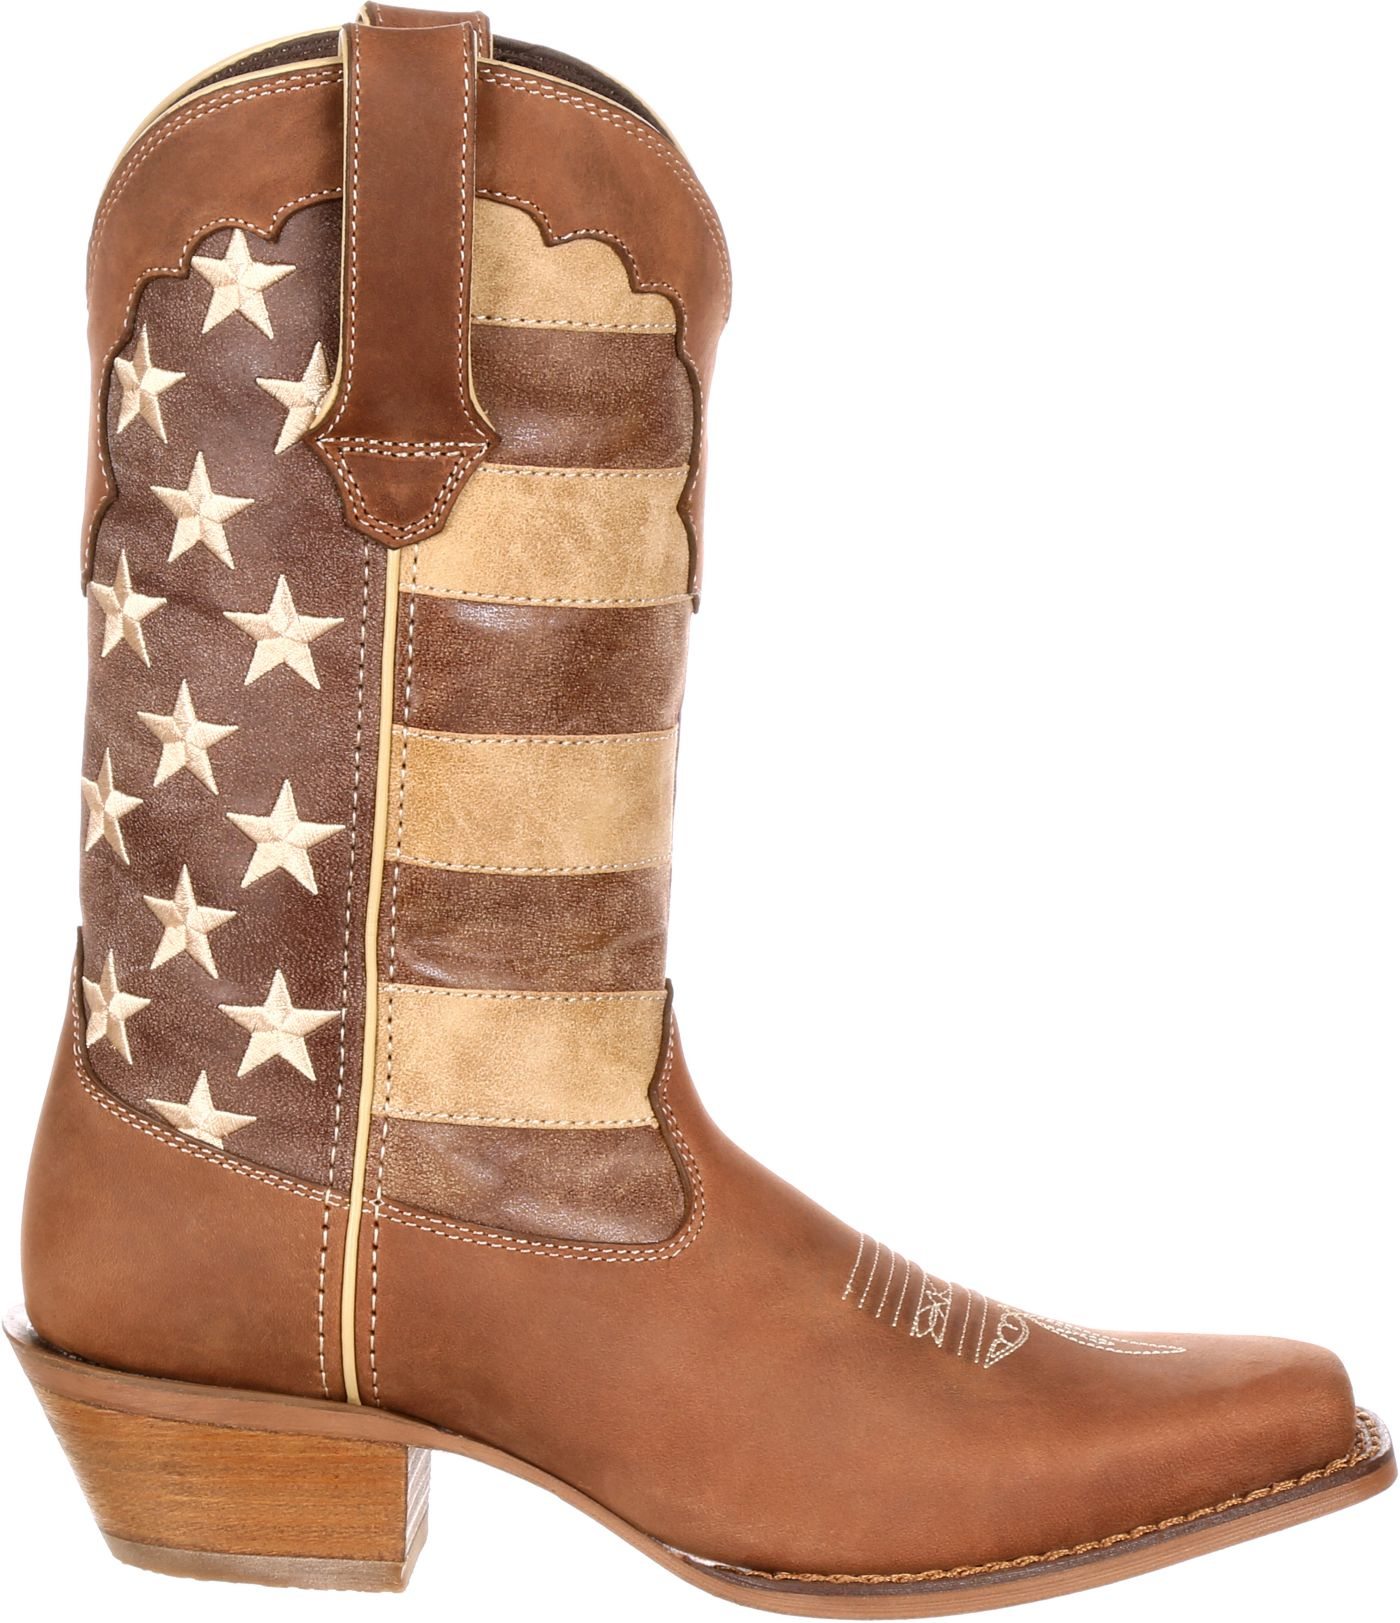 Durango Women's Crush Distressed Flag Western Boots